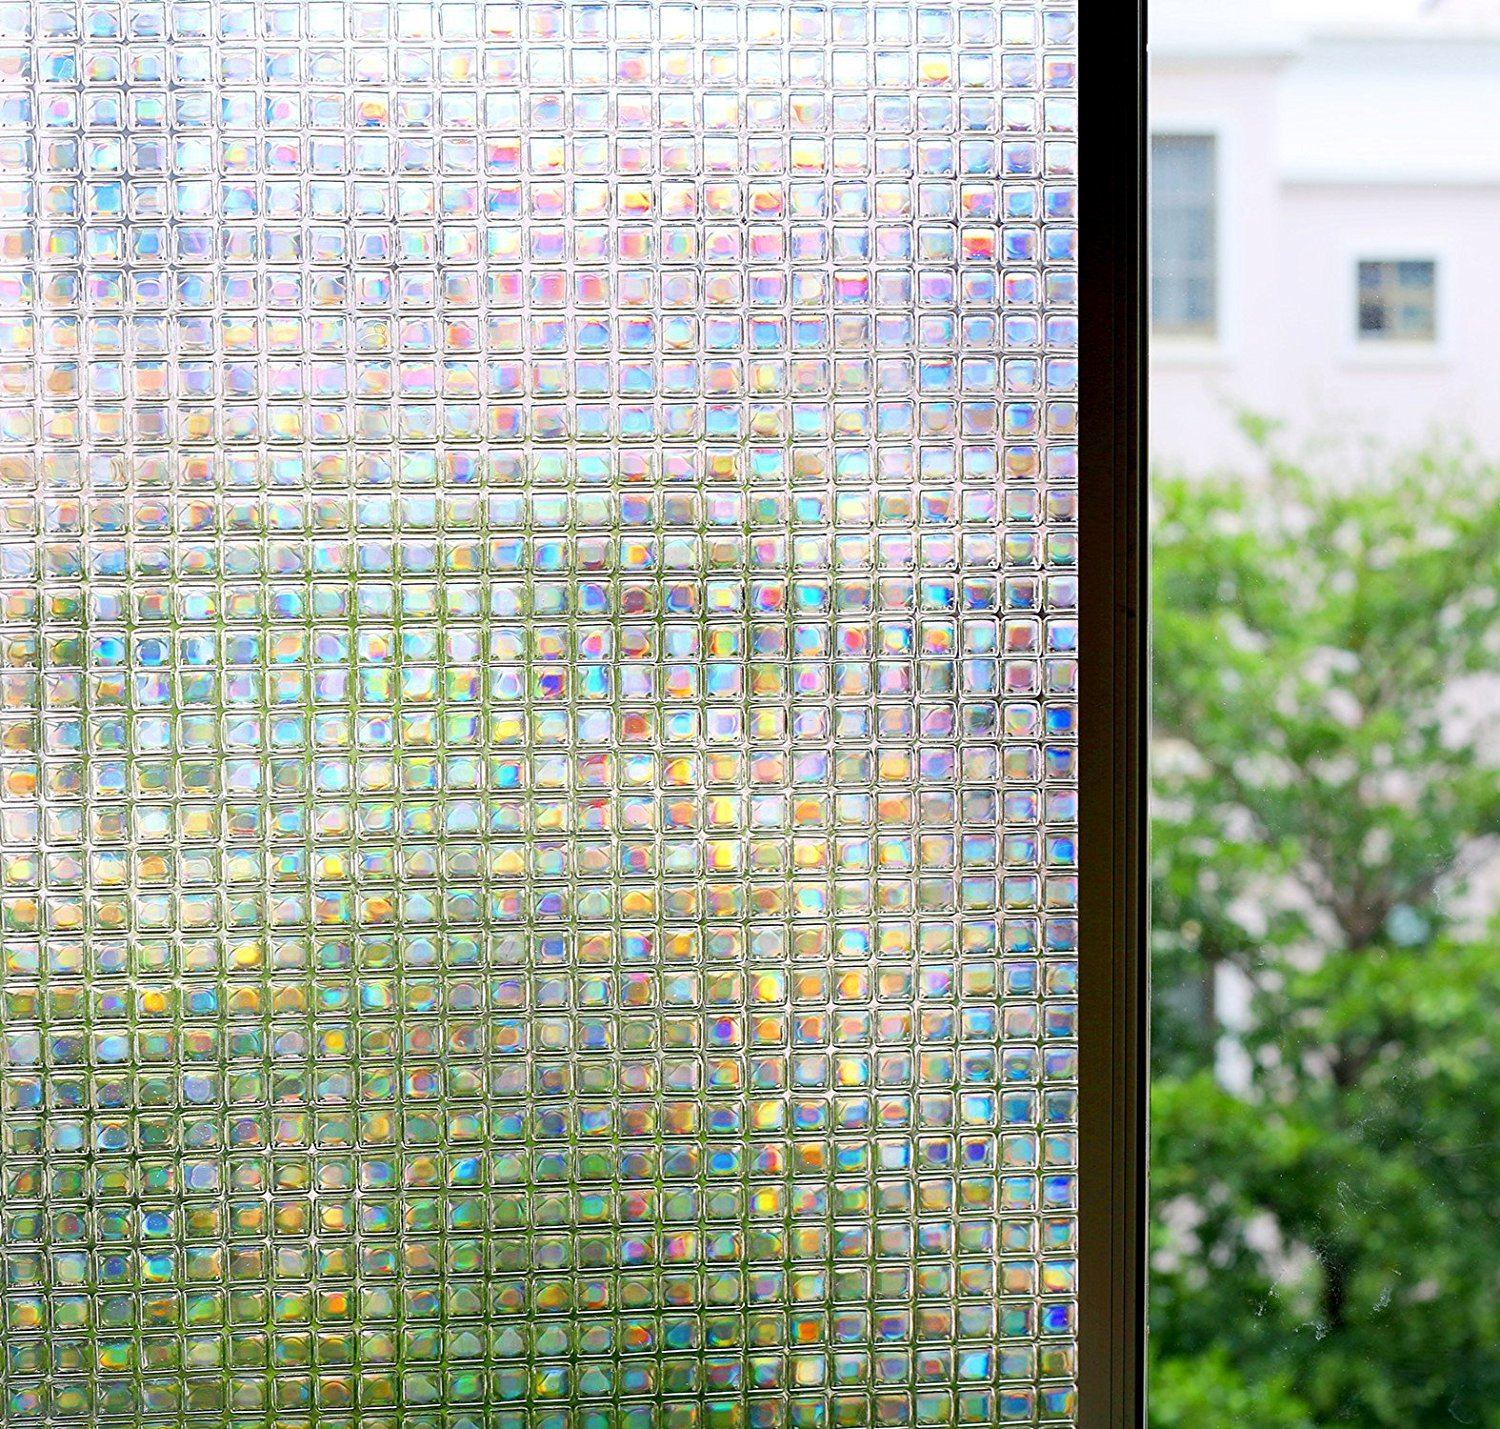 3D No Glue Decorative Window Film, Privacy Protection/Heat Control/Anti UV/Reflective Window Decoration Glass Door Cling, Stained Glass Window Tint Home/Office, 35.5x78.7 inch Mosaic